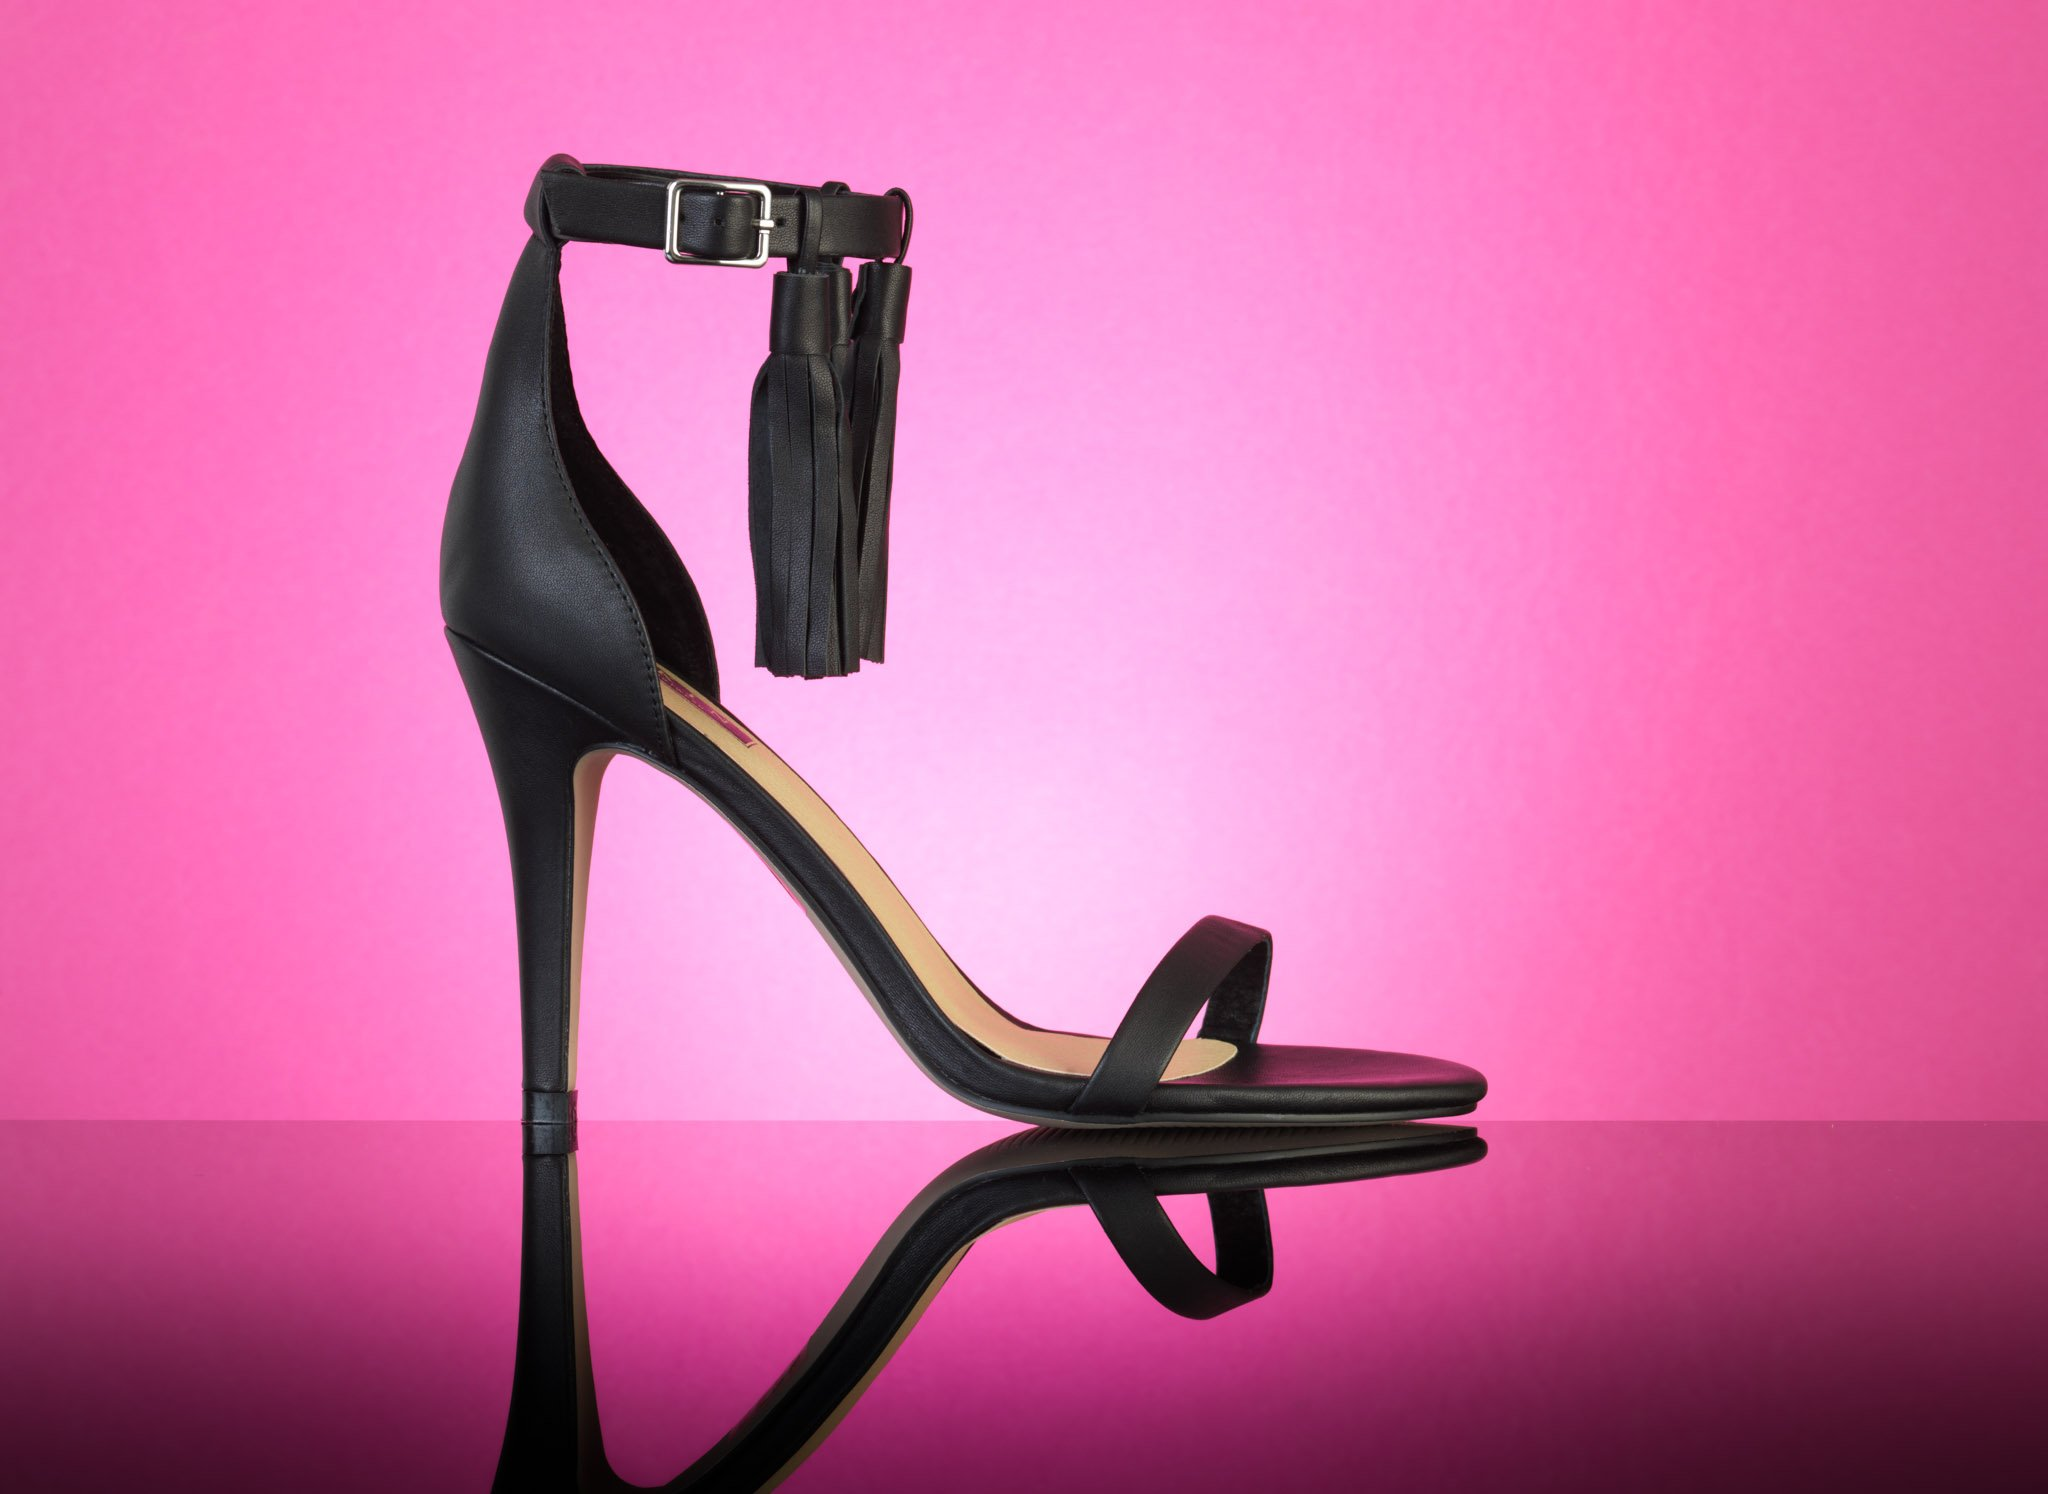 Shoe photography - High Heels on red background